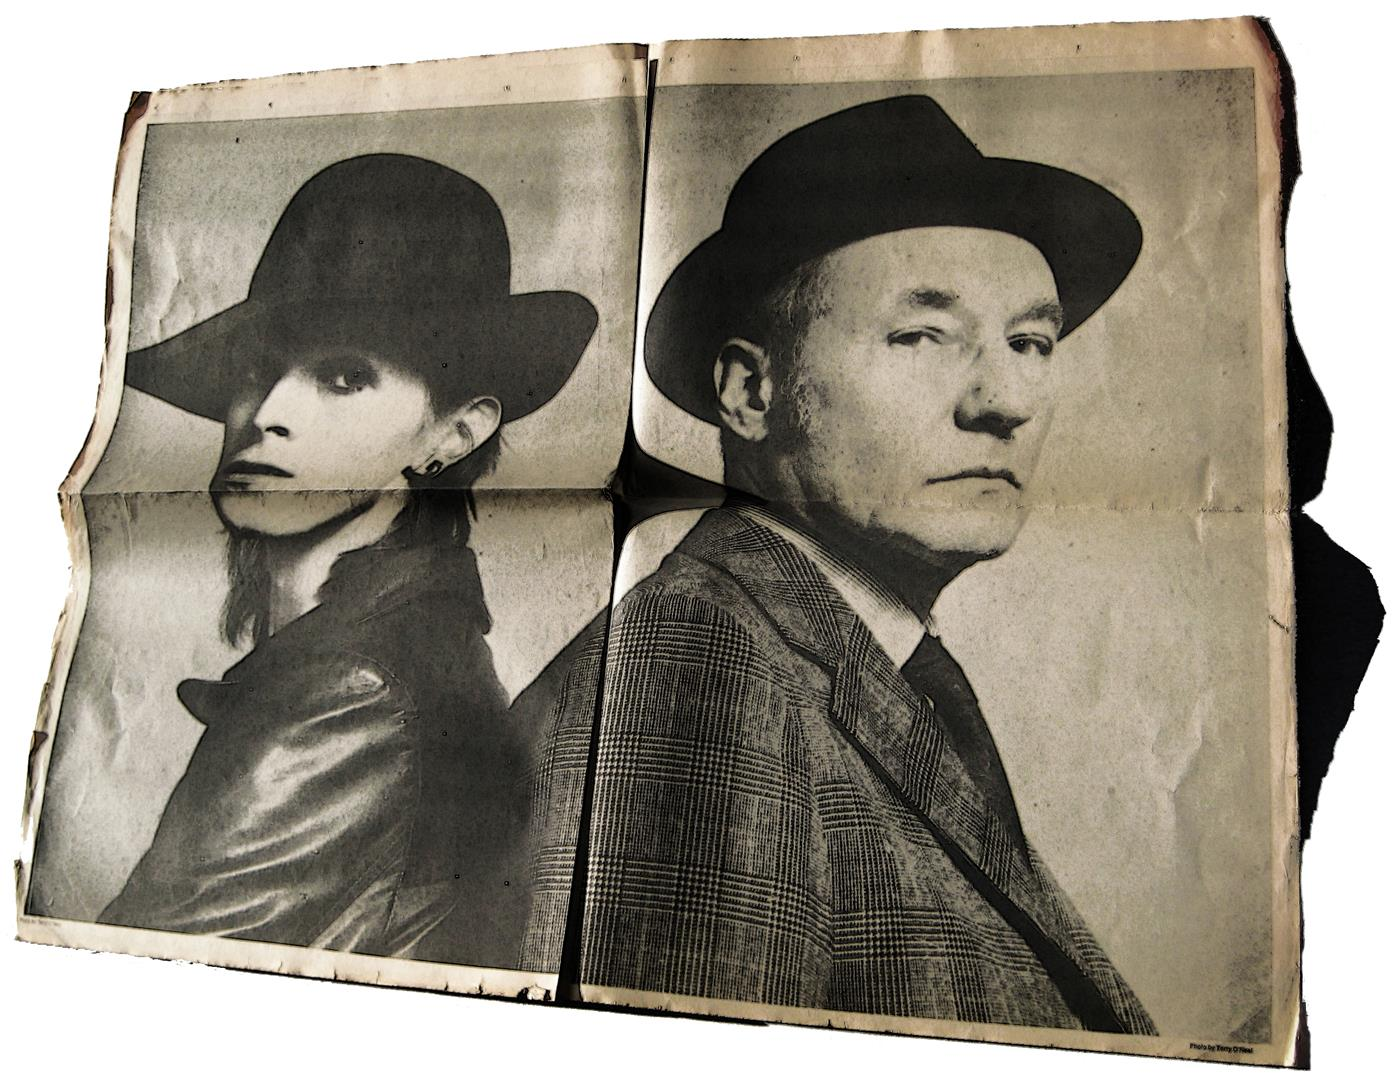 David Bowie, William S. Burroughs, Photo by Terry O'Neal, ISOLAR tour magazine 1976 Station to Station